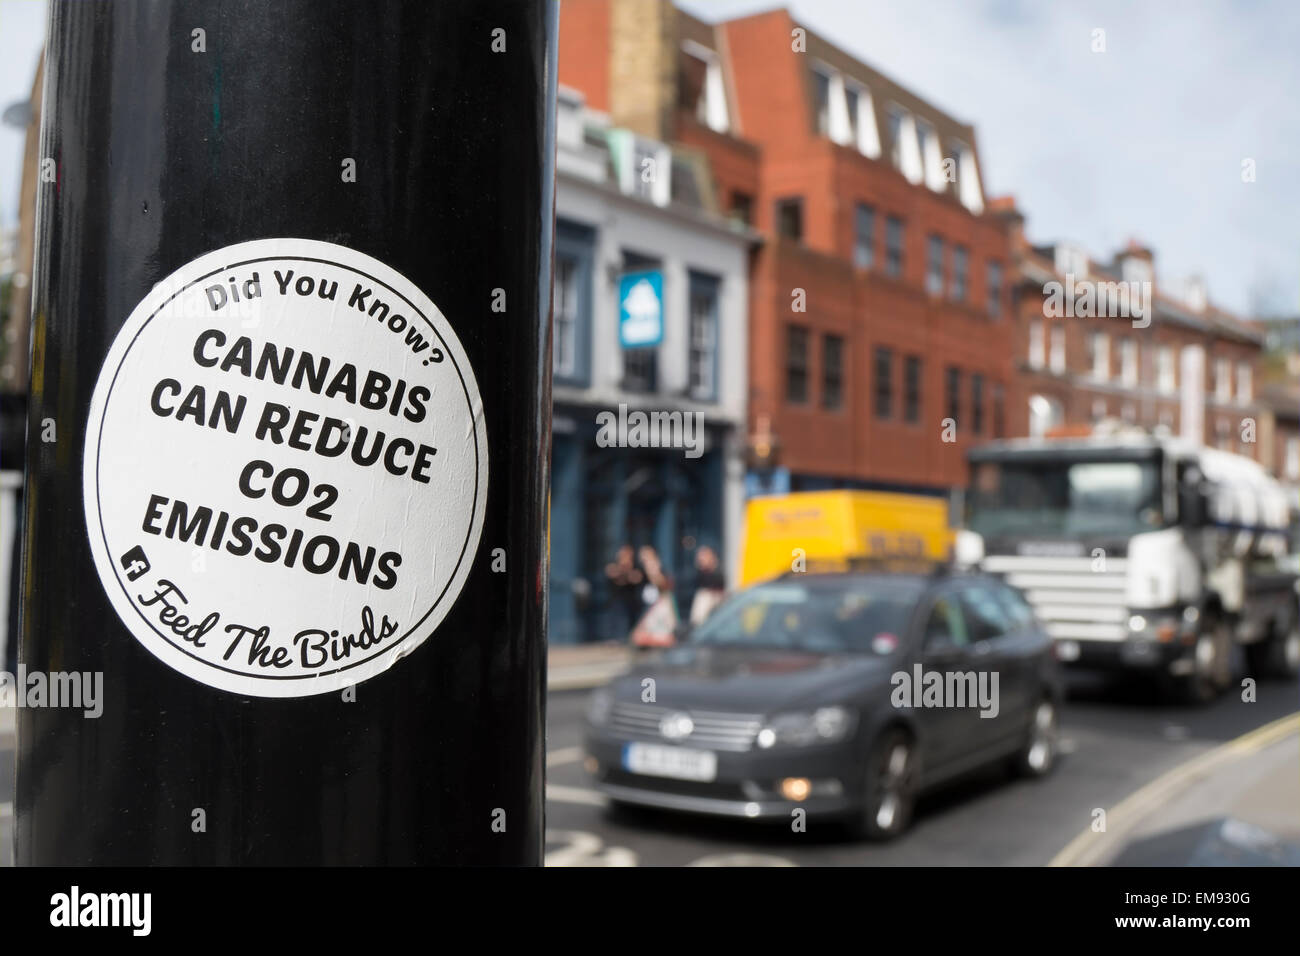 cannabis can reduce co2 emissions sticker, part of a legalise cannabis campaign, in twickenham, middlesex, england - Stock Image